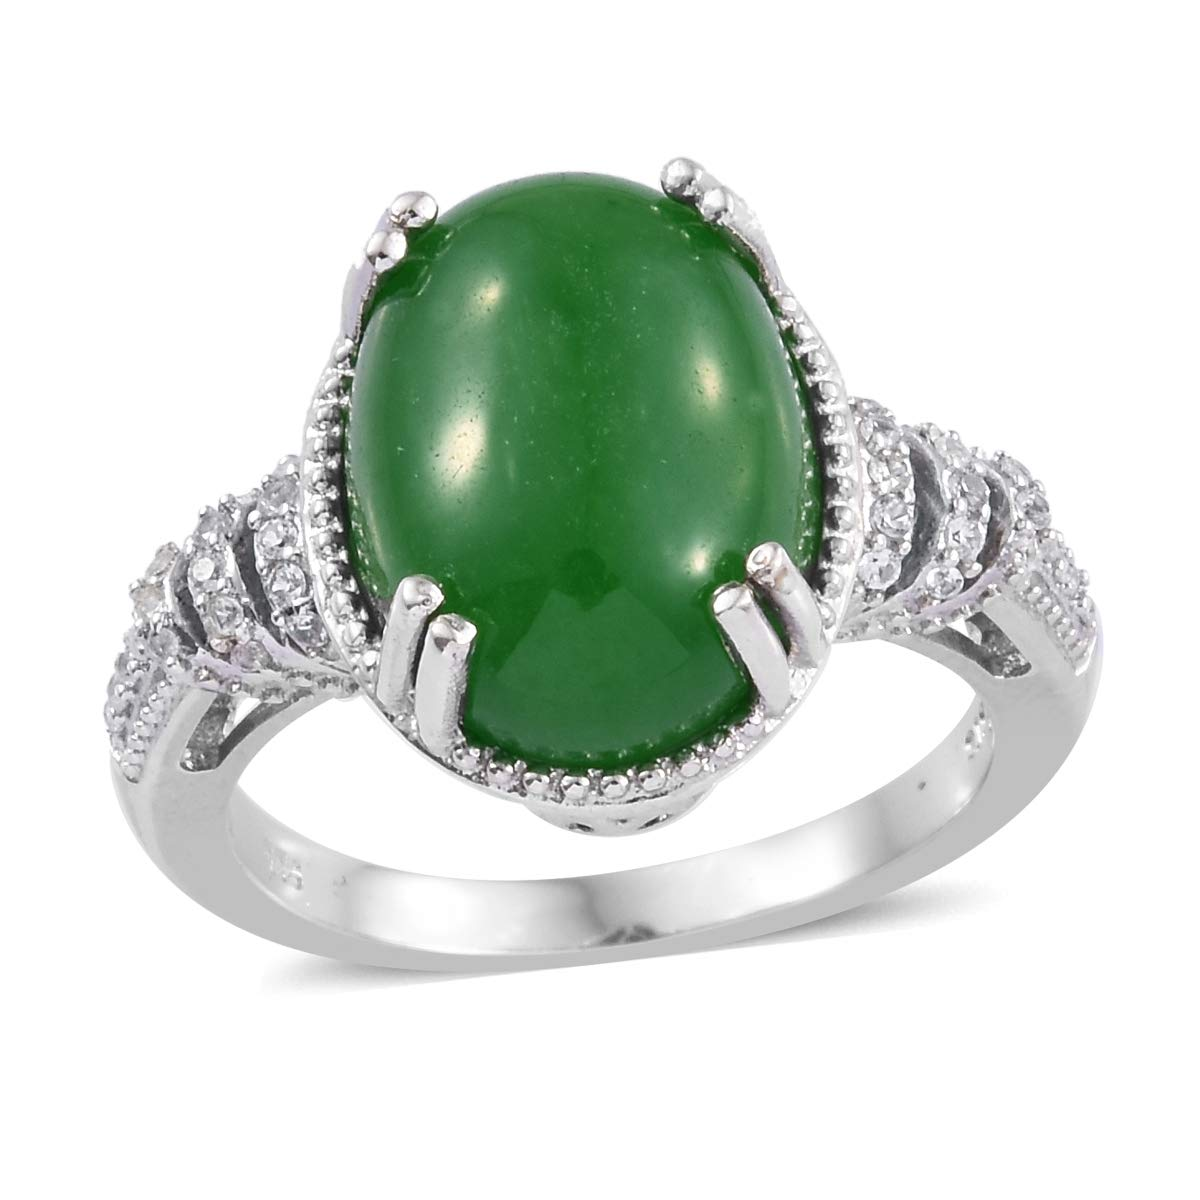 Promise Ring 925 Sterling Silver Platinum Plated Green Jade Zircon Jewelry Gift for Women Size 6 by Shop LC Delivering Joy